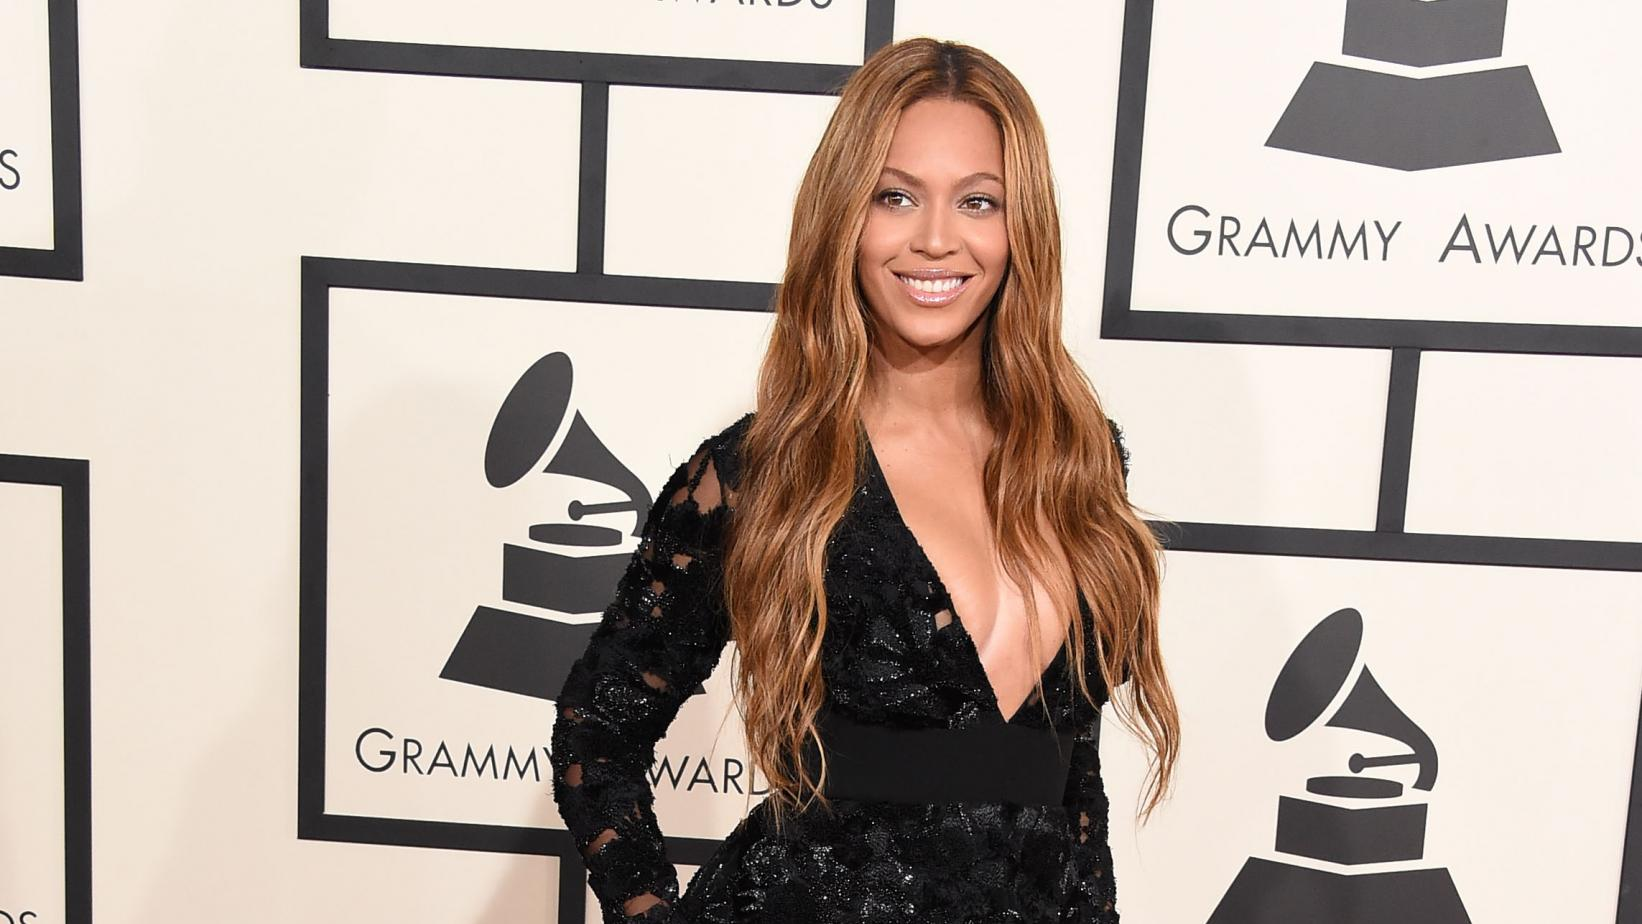 Beyoncé on the GRAMMY red carpet